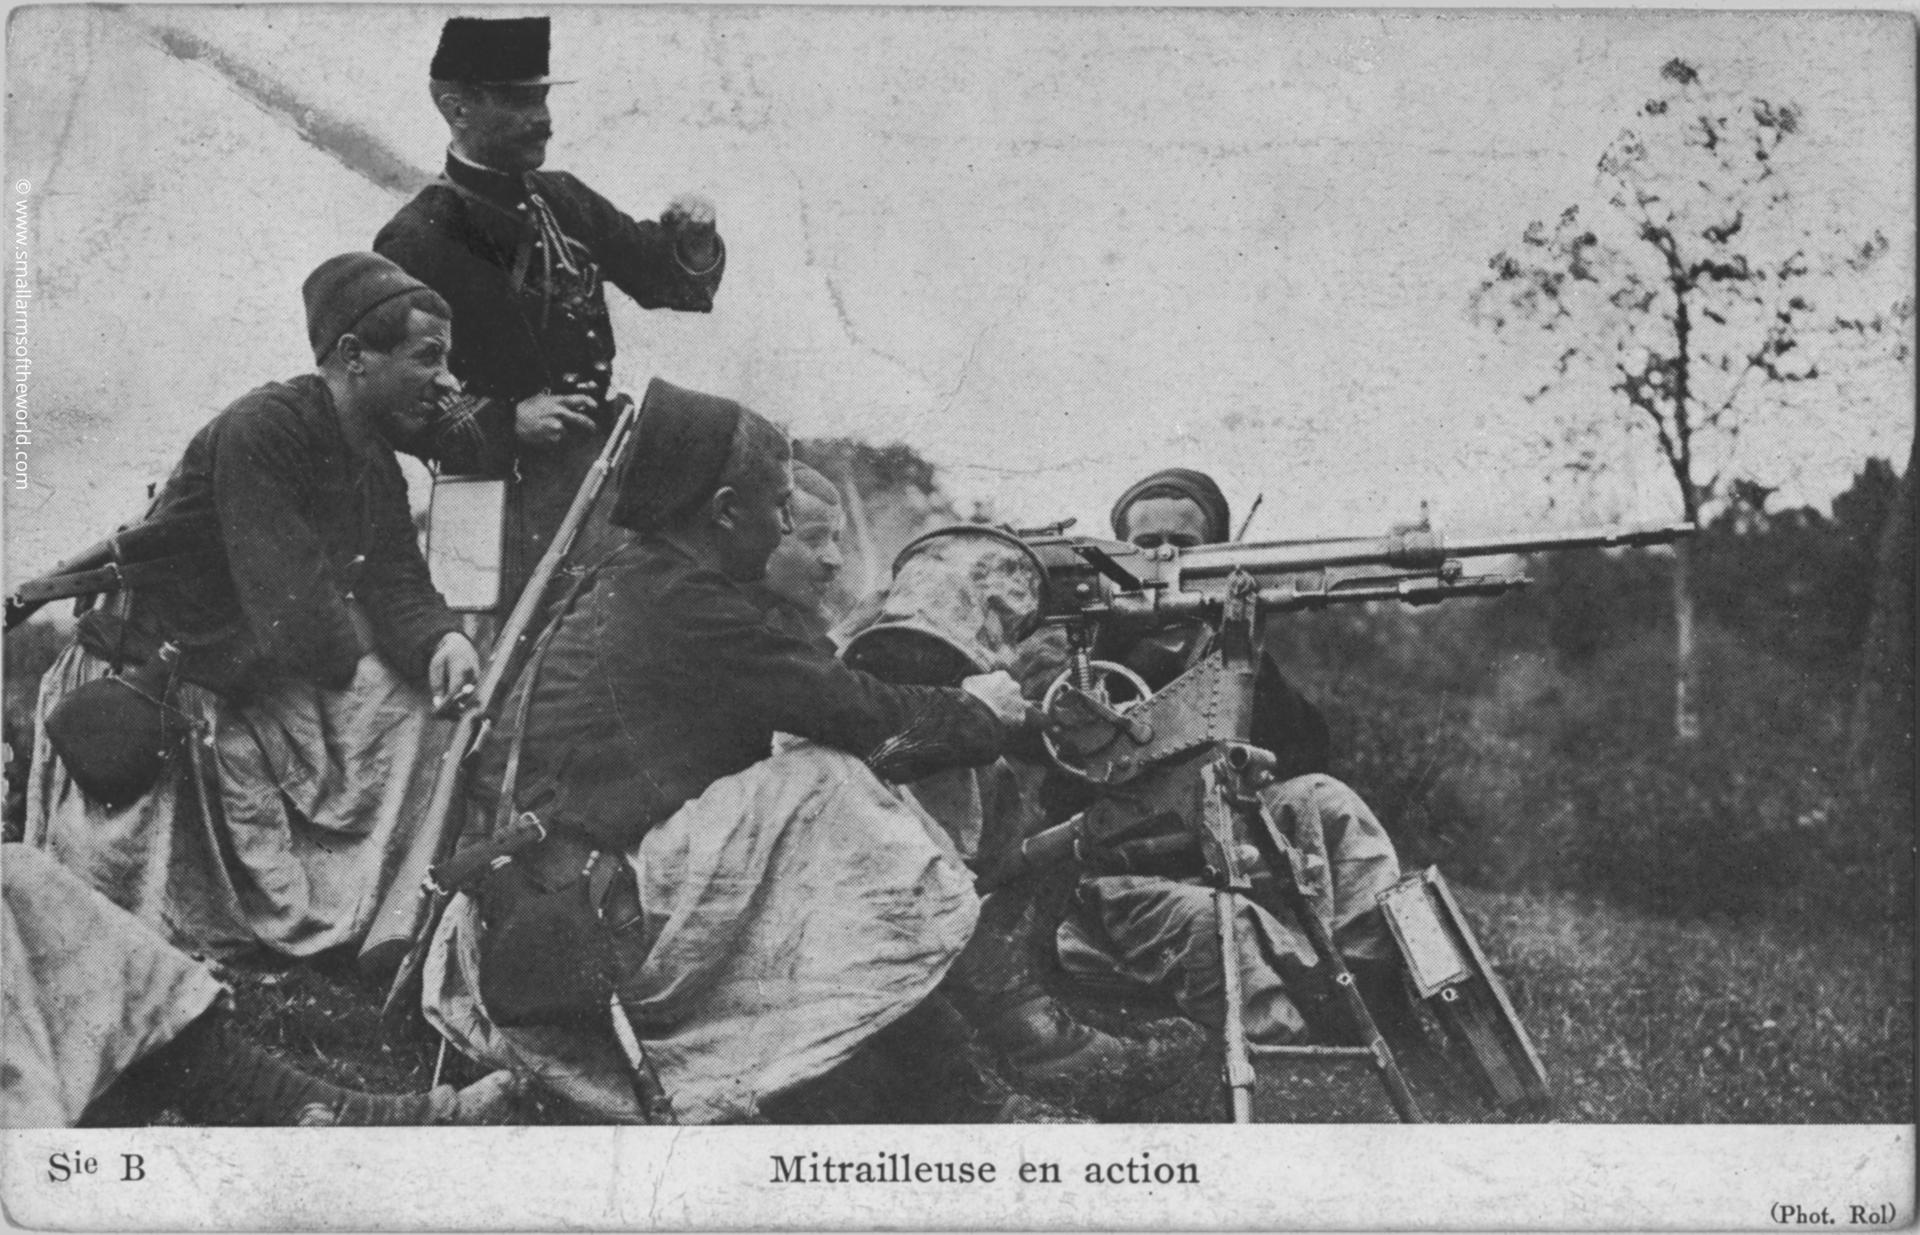 French Zouave (French soldiers from North Africa) training with a 1907/15 St.Etienne machine gun. Note the soldier carrying the bucket to catch the shells during a training exercise. Note the officer directing the fire and the unusually shaped French canteen with separate opening for filling and drinking. The rifles are berthier carbines.